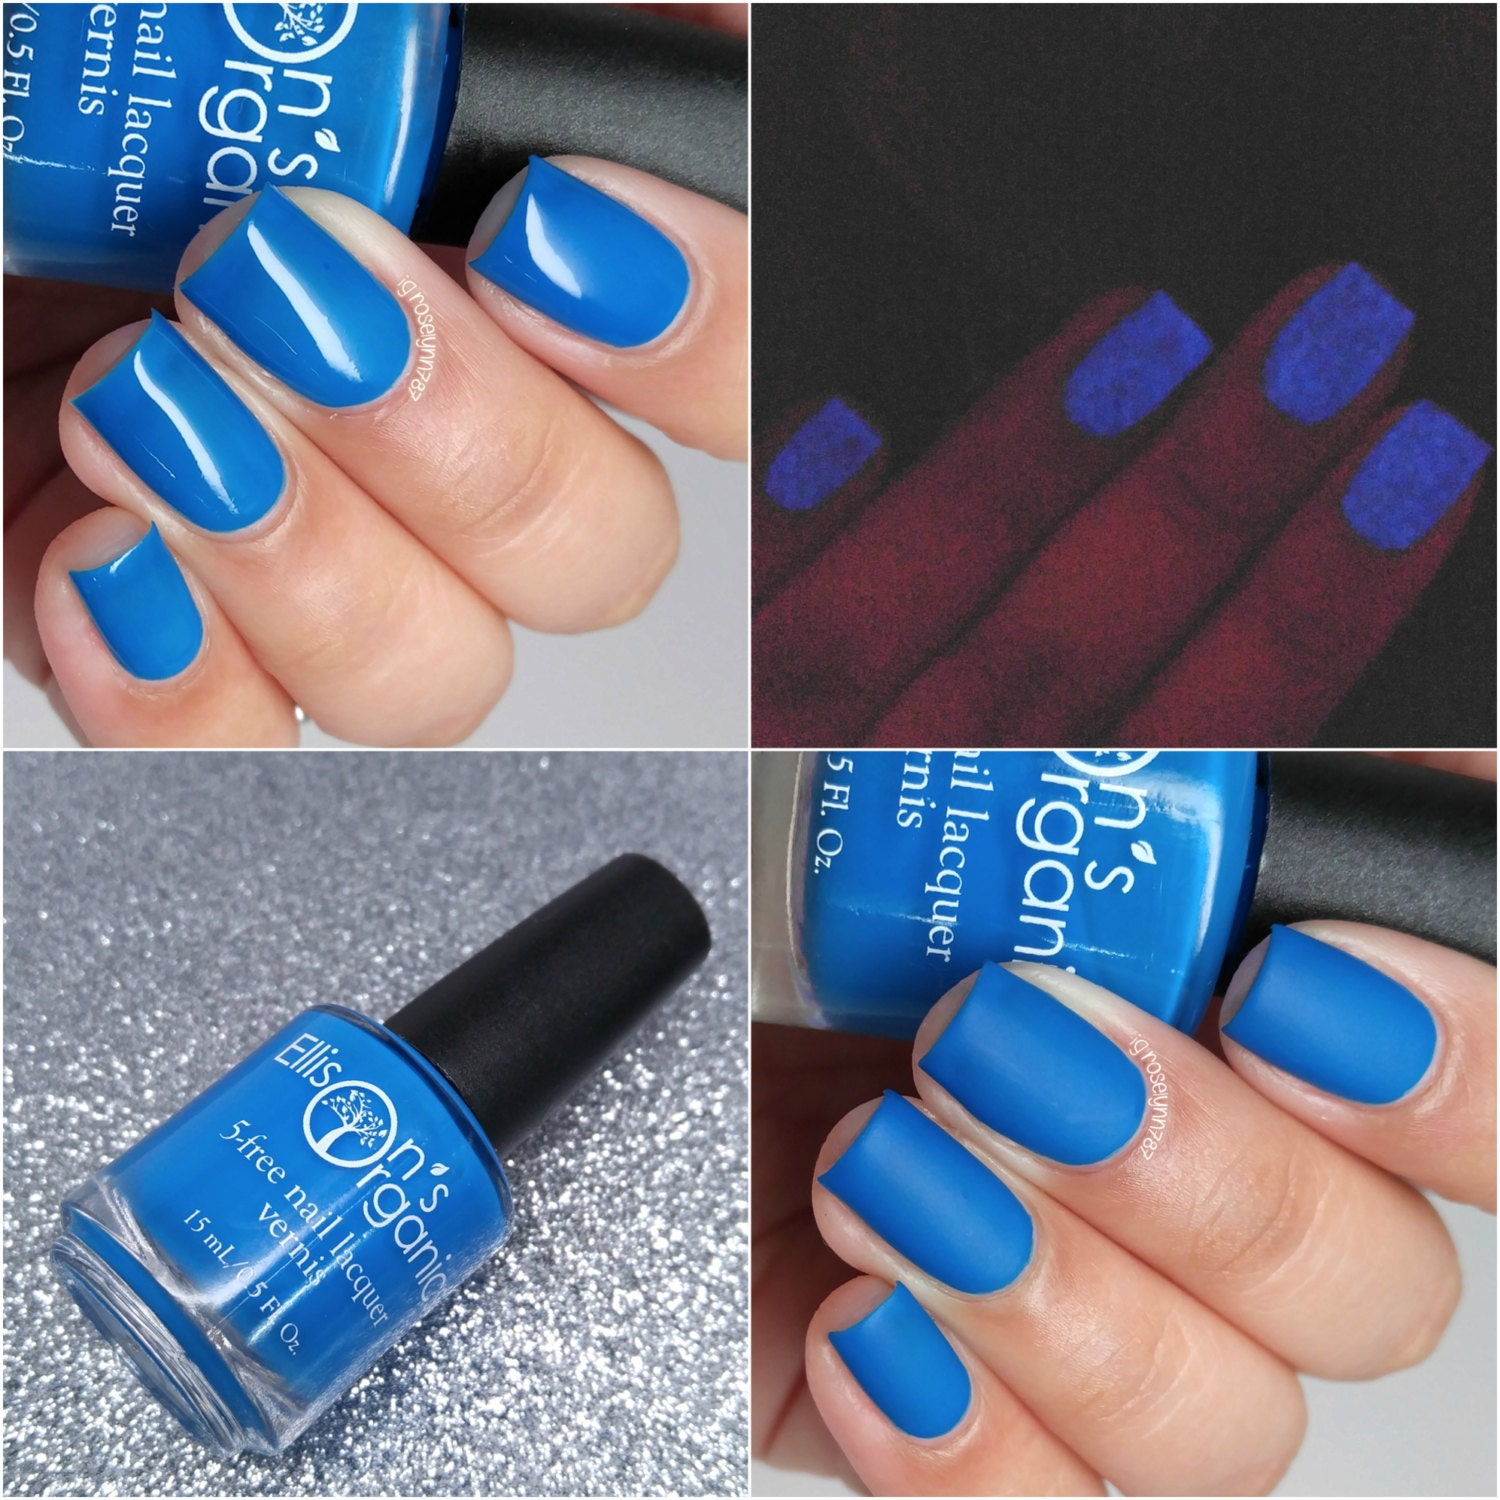 MATTE Neon Blue Nail Polish Glow-in-the-Dark Vegan Neon